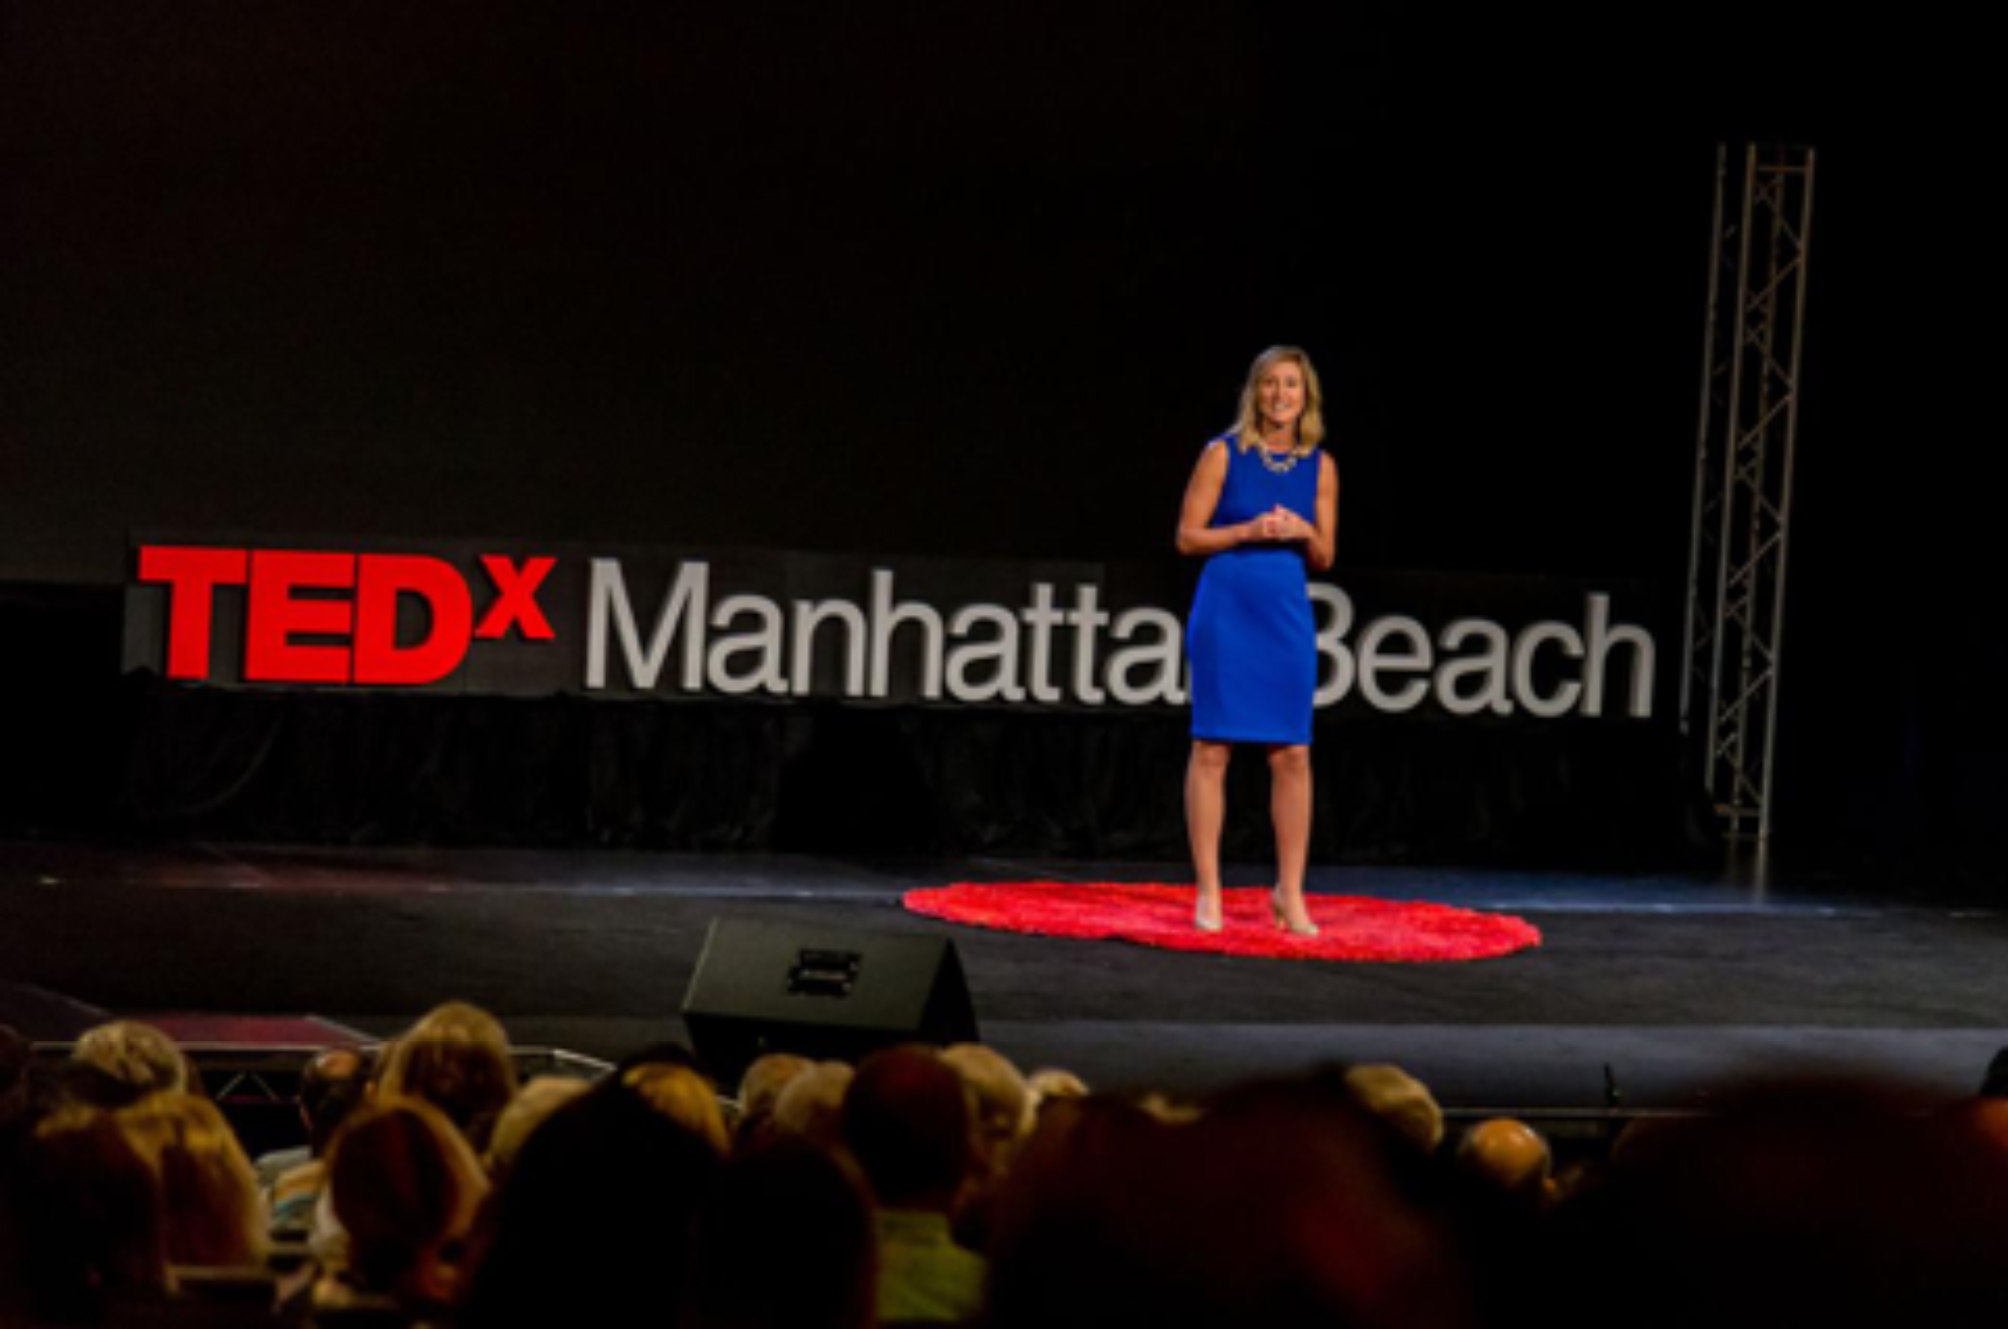 TEDx Manhattan Beach @ Mira Costa High School